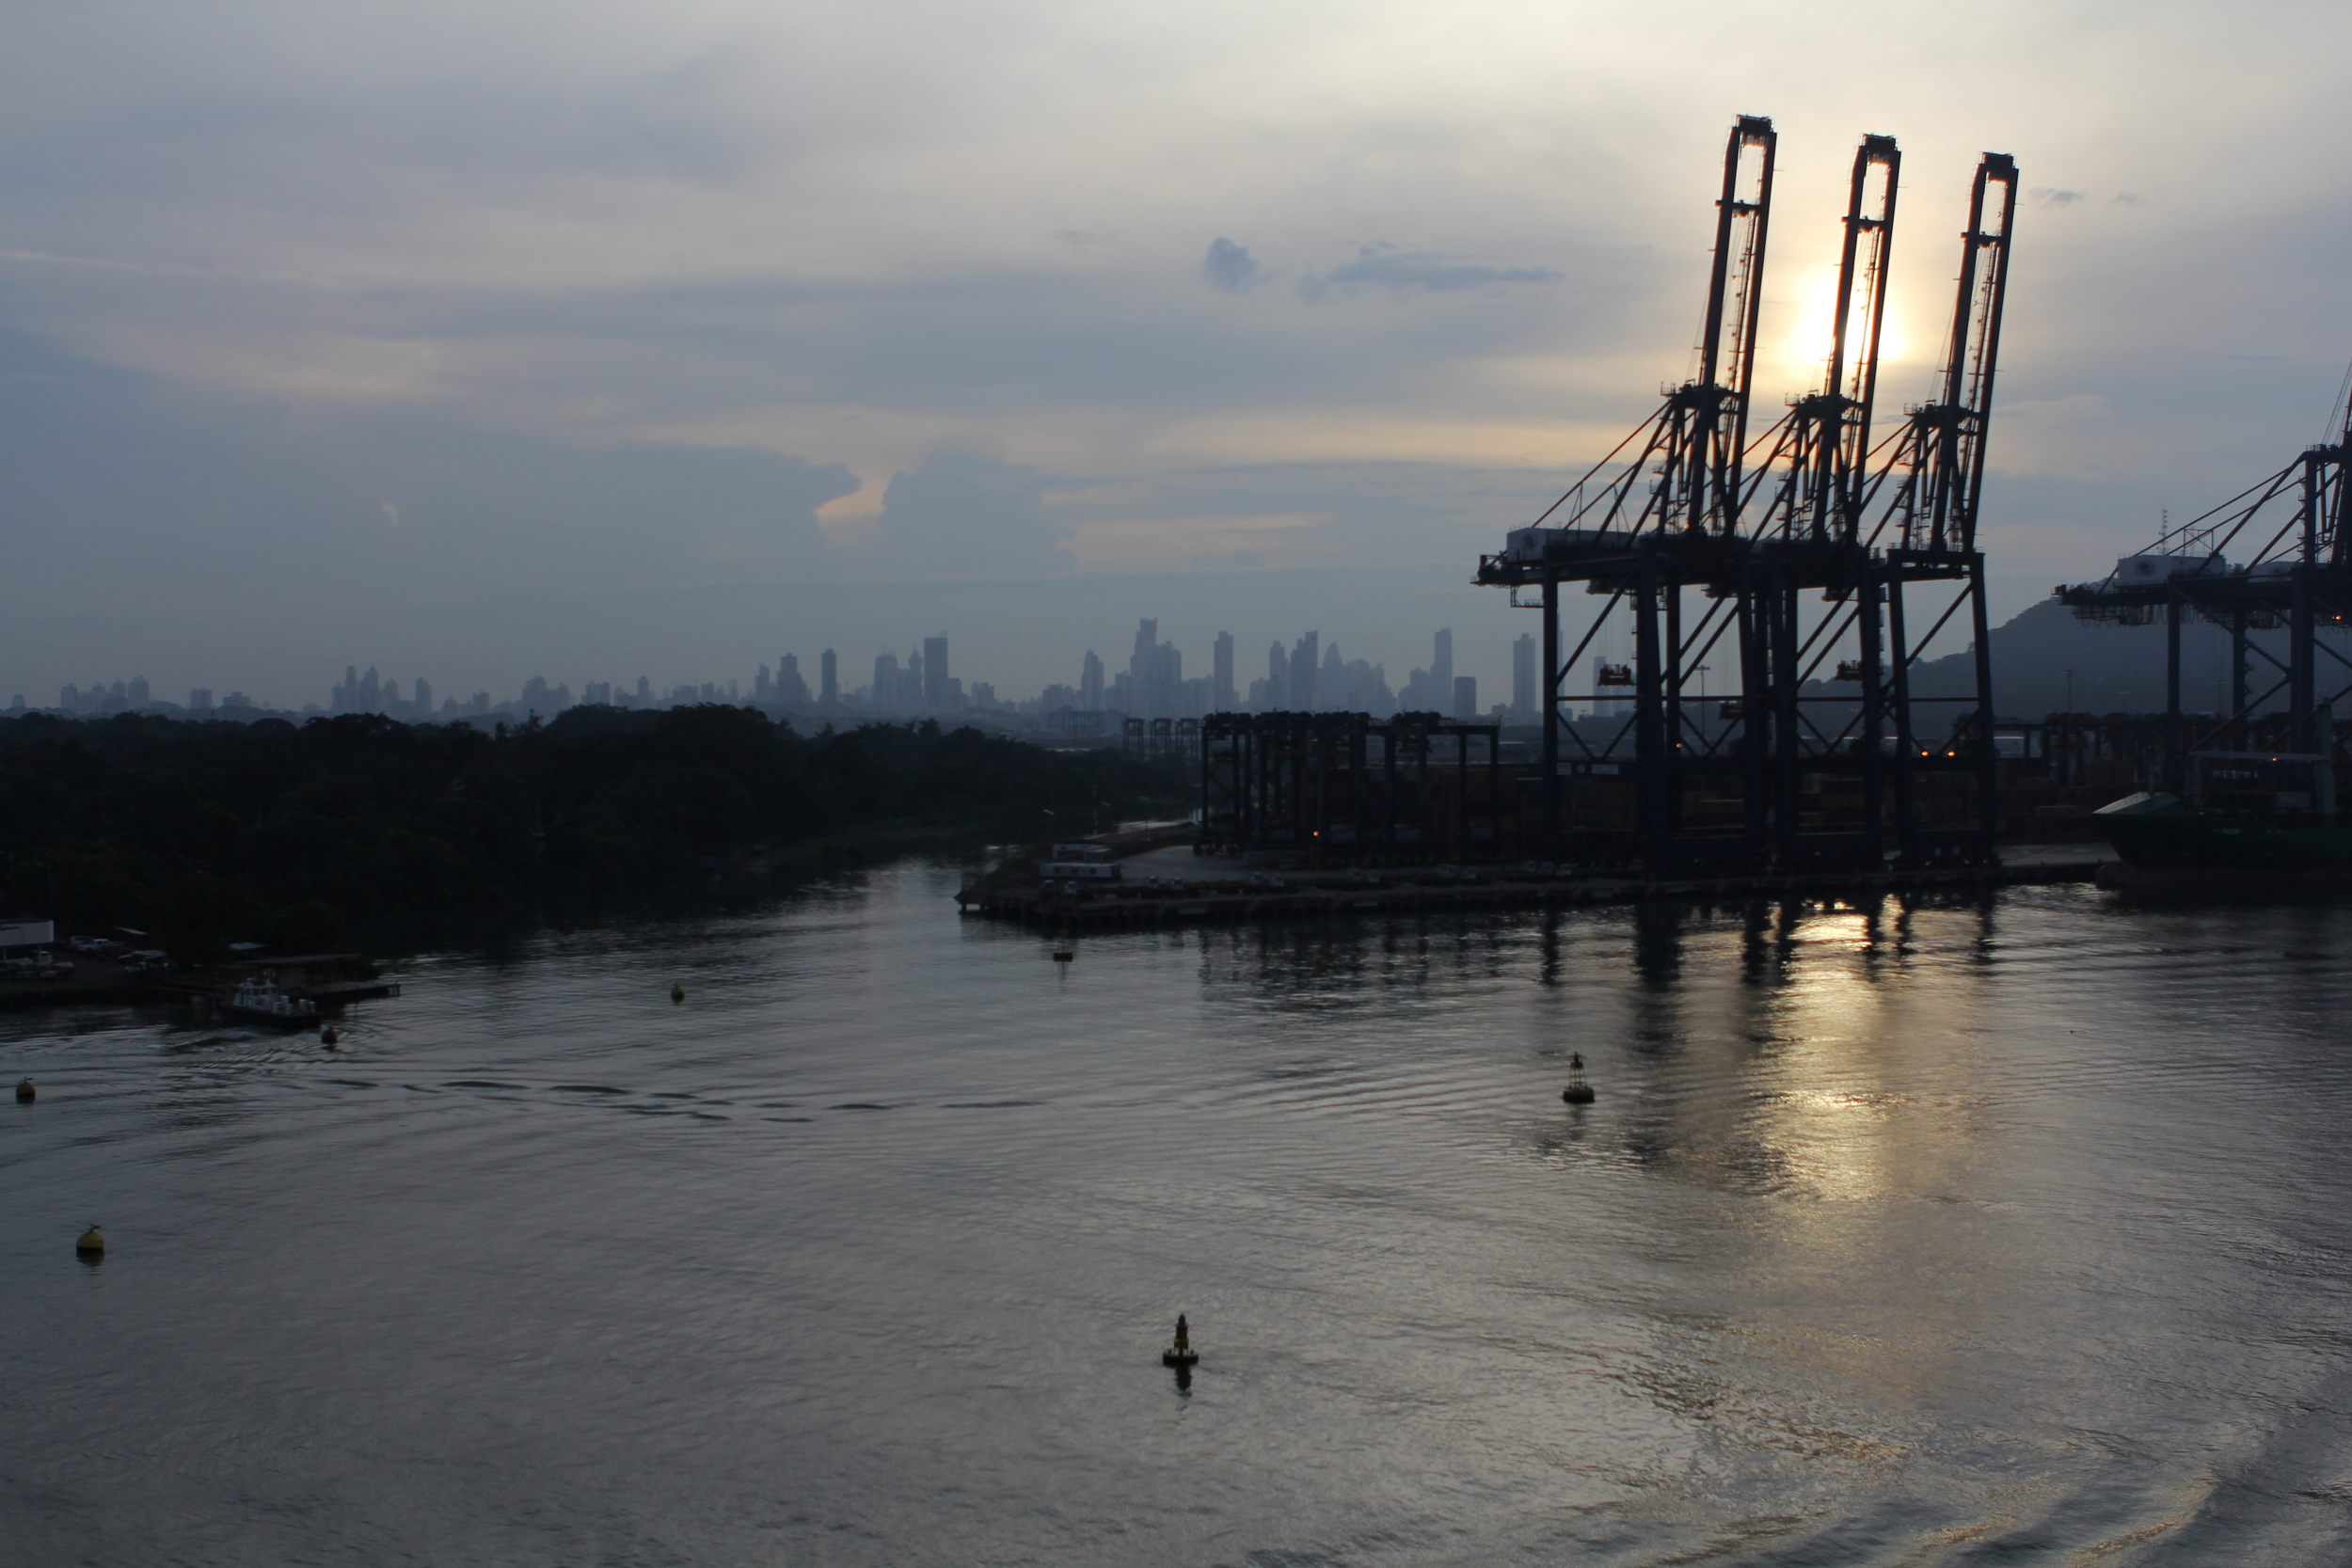 Sunrise over the cranes at the cargo piers..